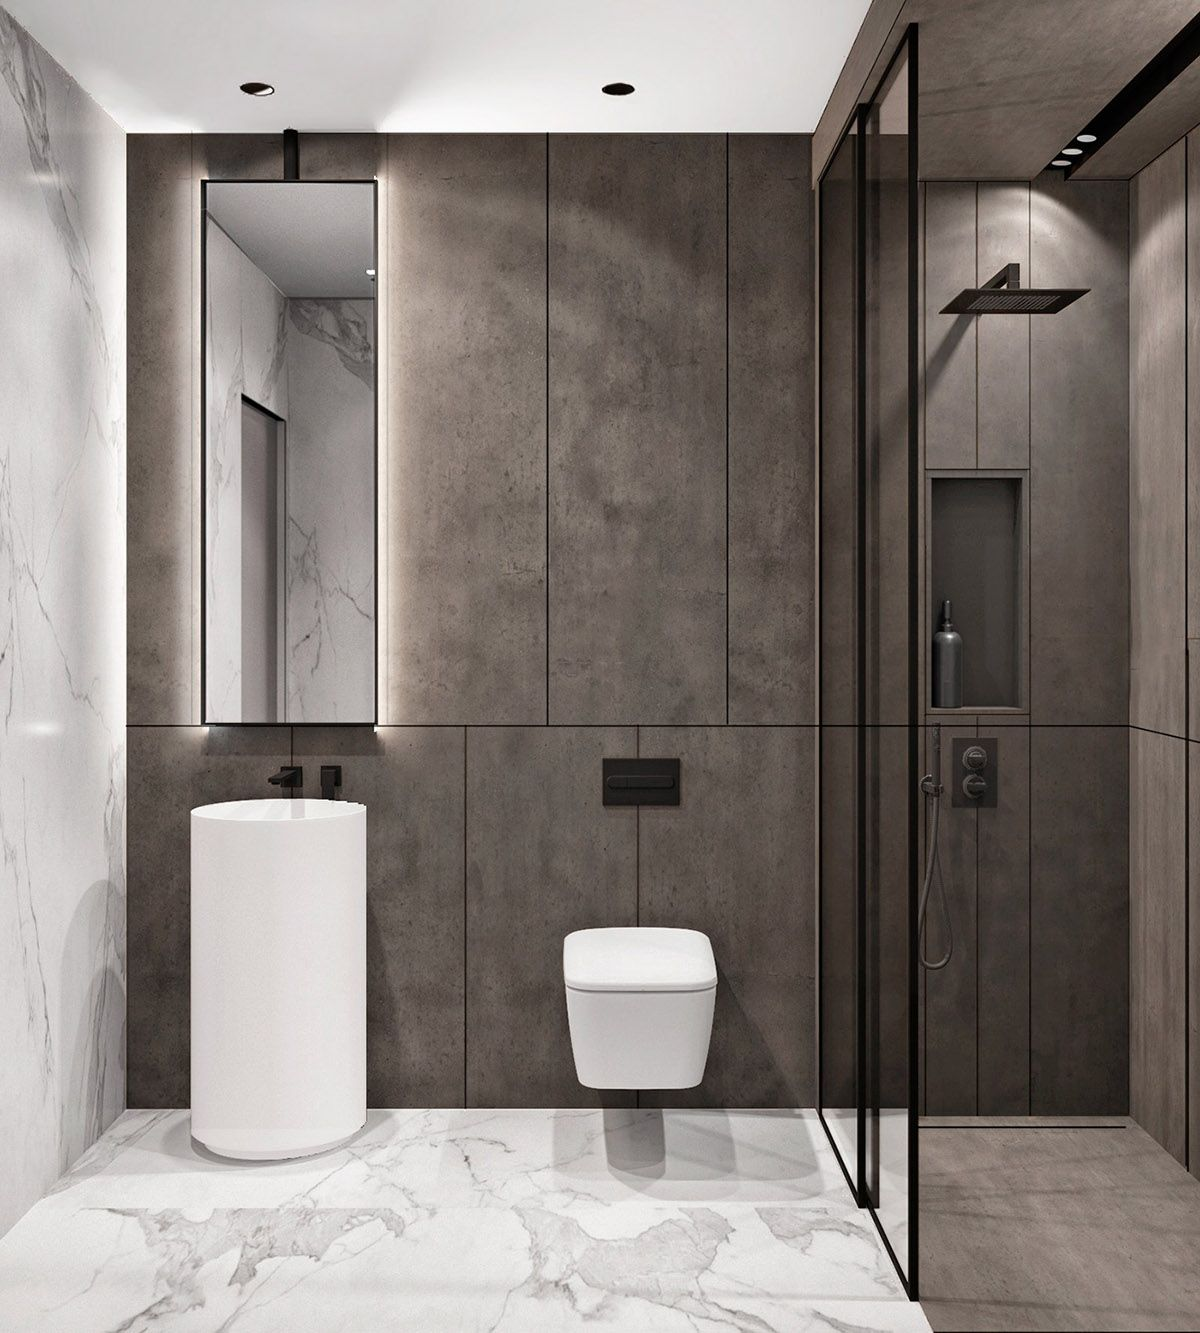 2 Modern Home Designs With Colourful Twists Bathroom Design Bathroom Interior Design Modern Toilet